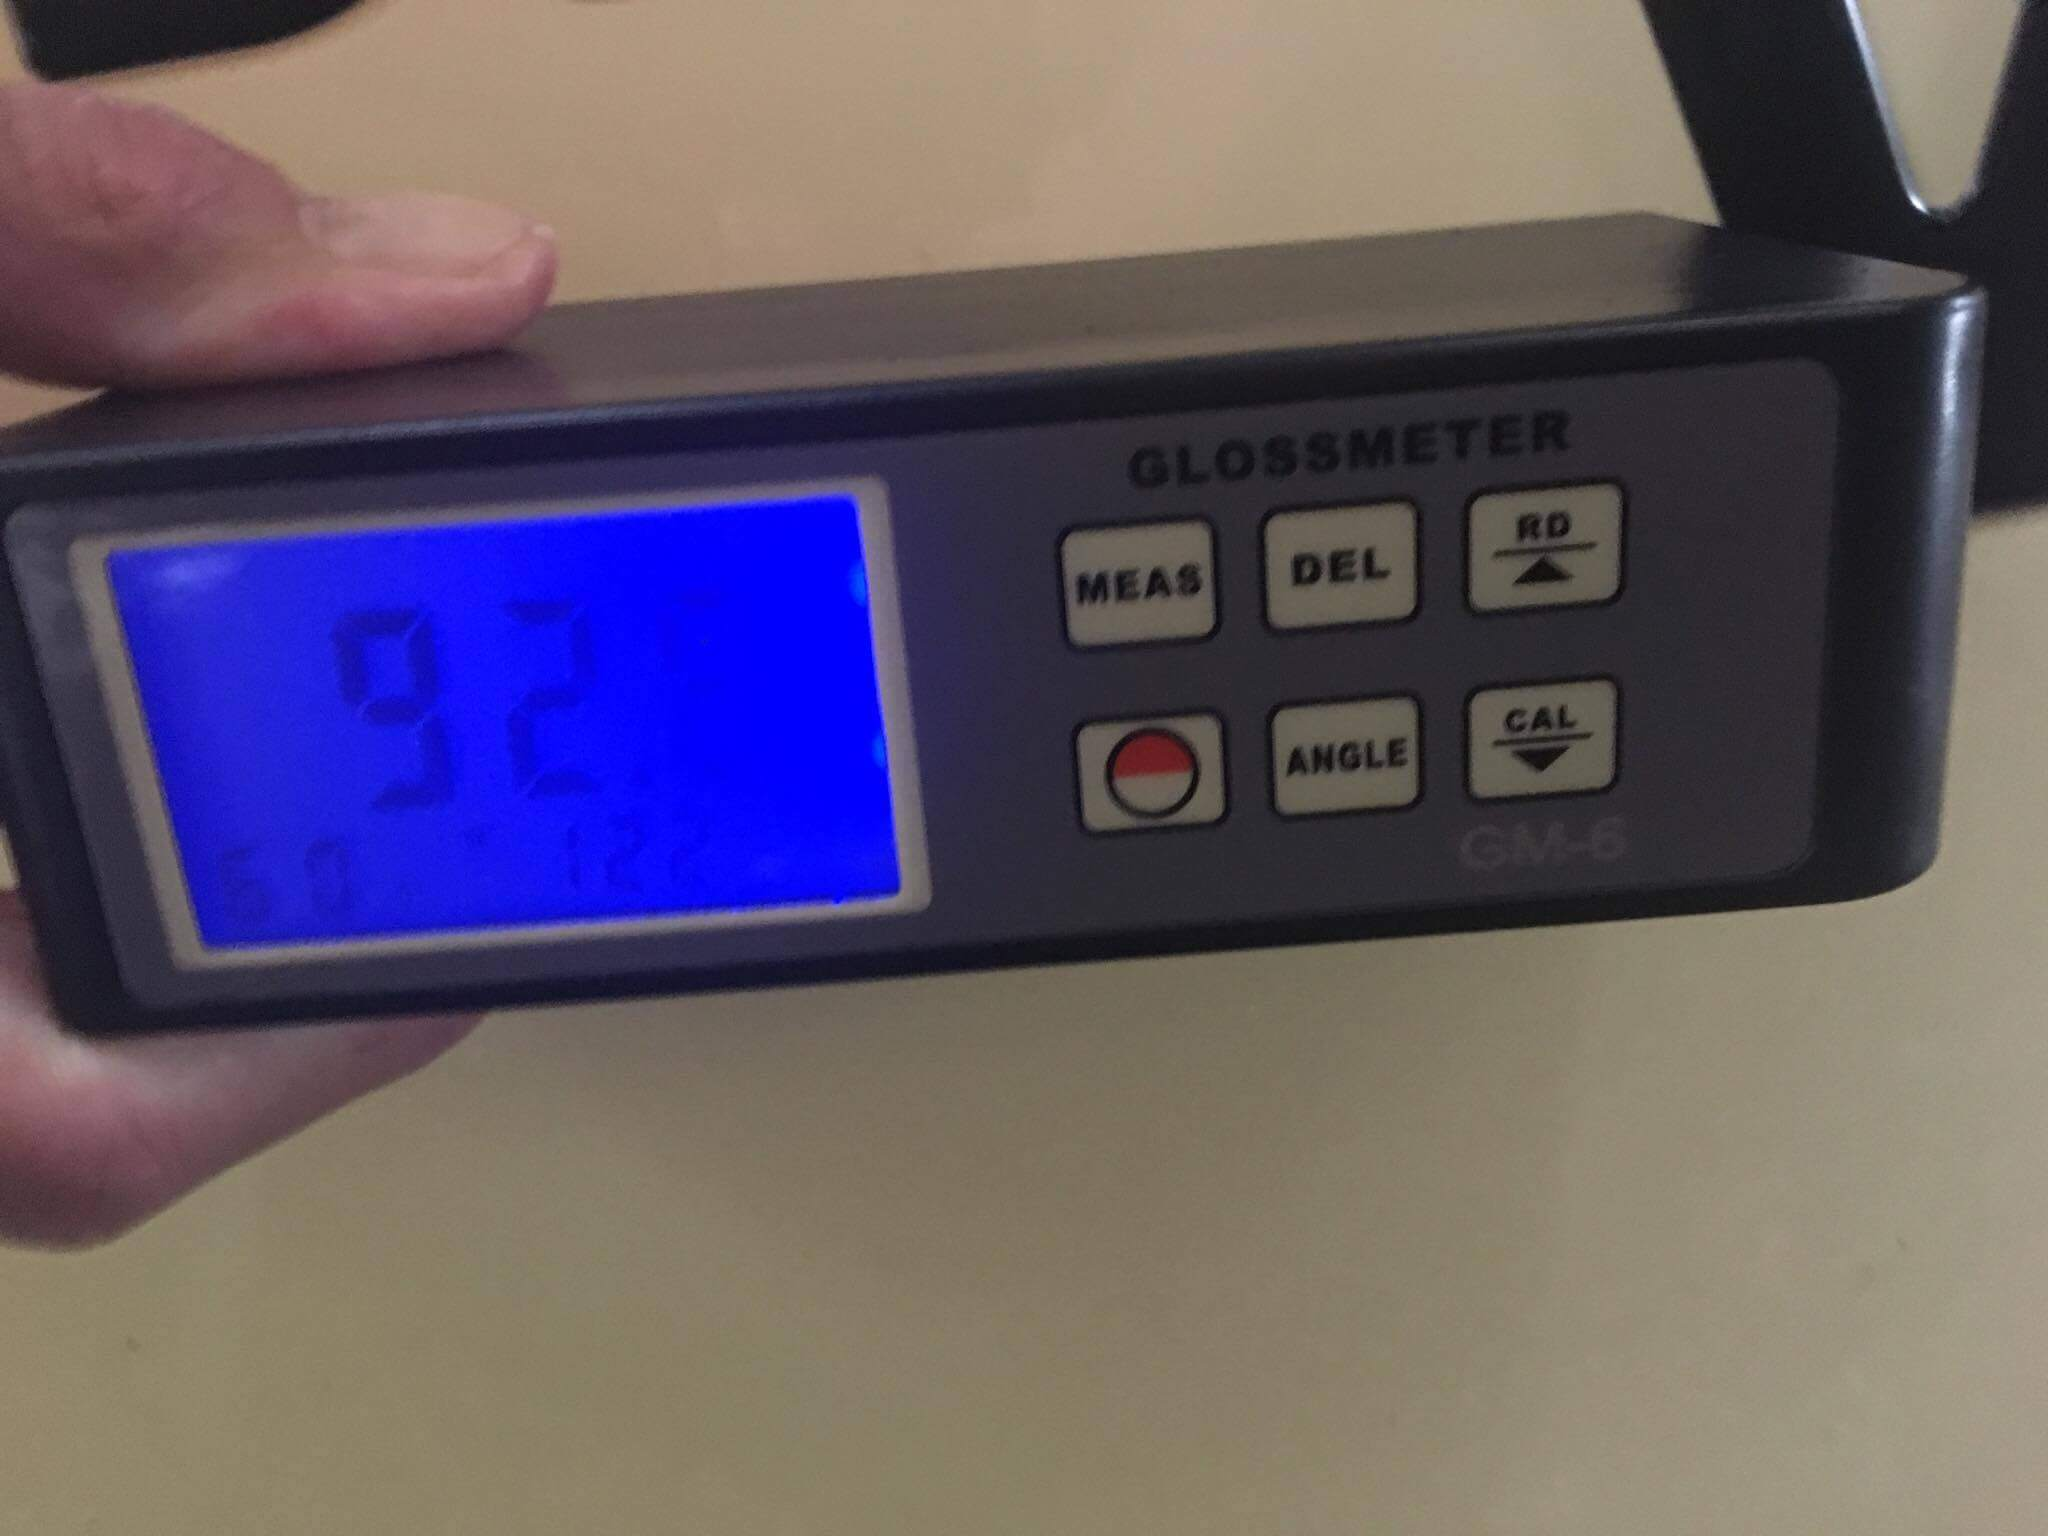 92 gloss meter reading on SeaVee